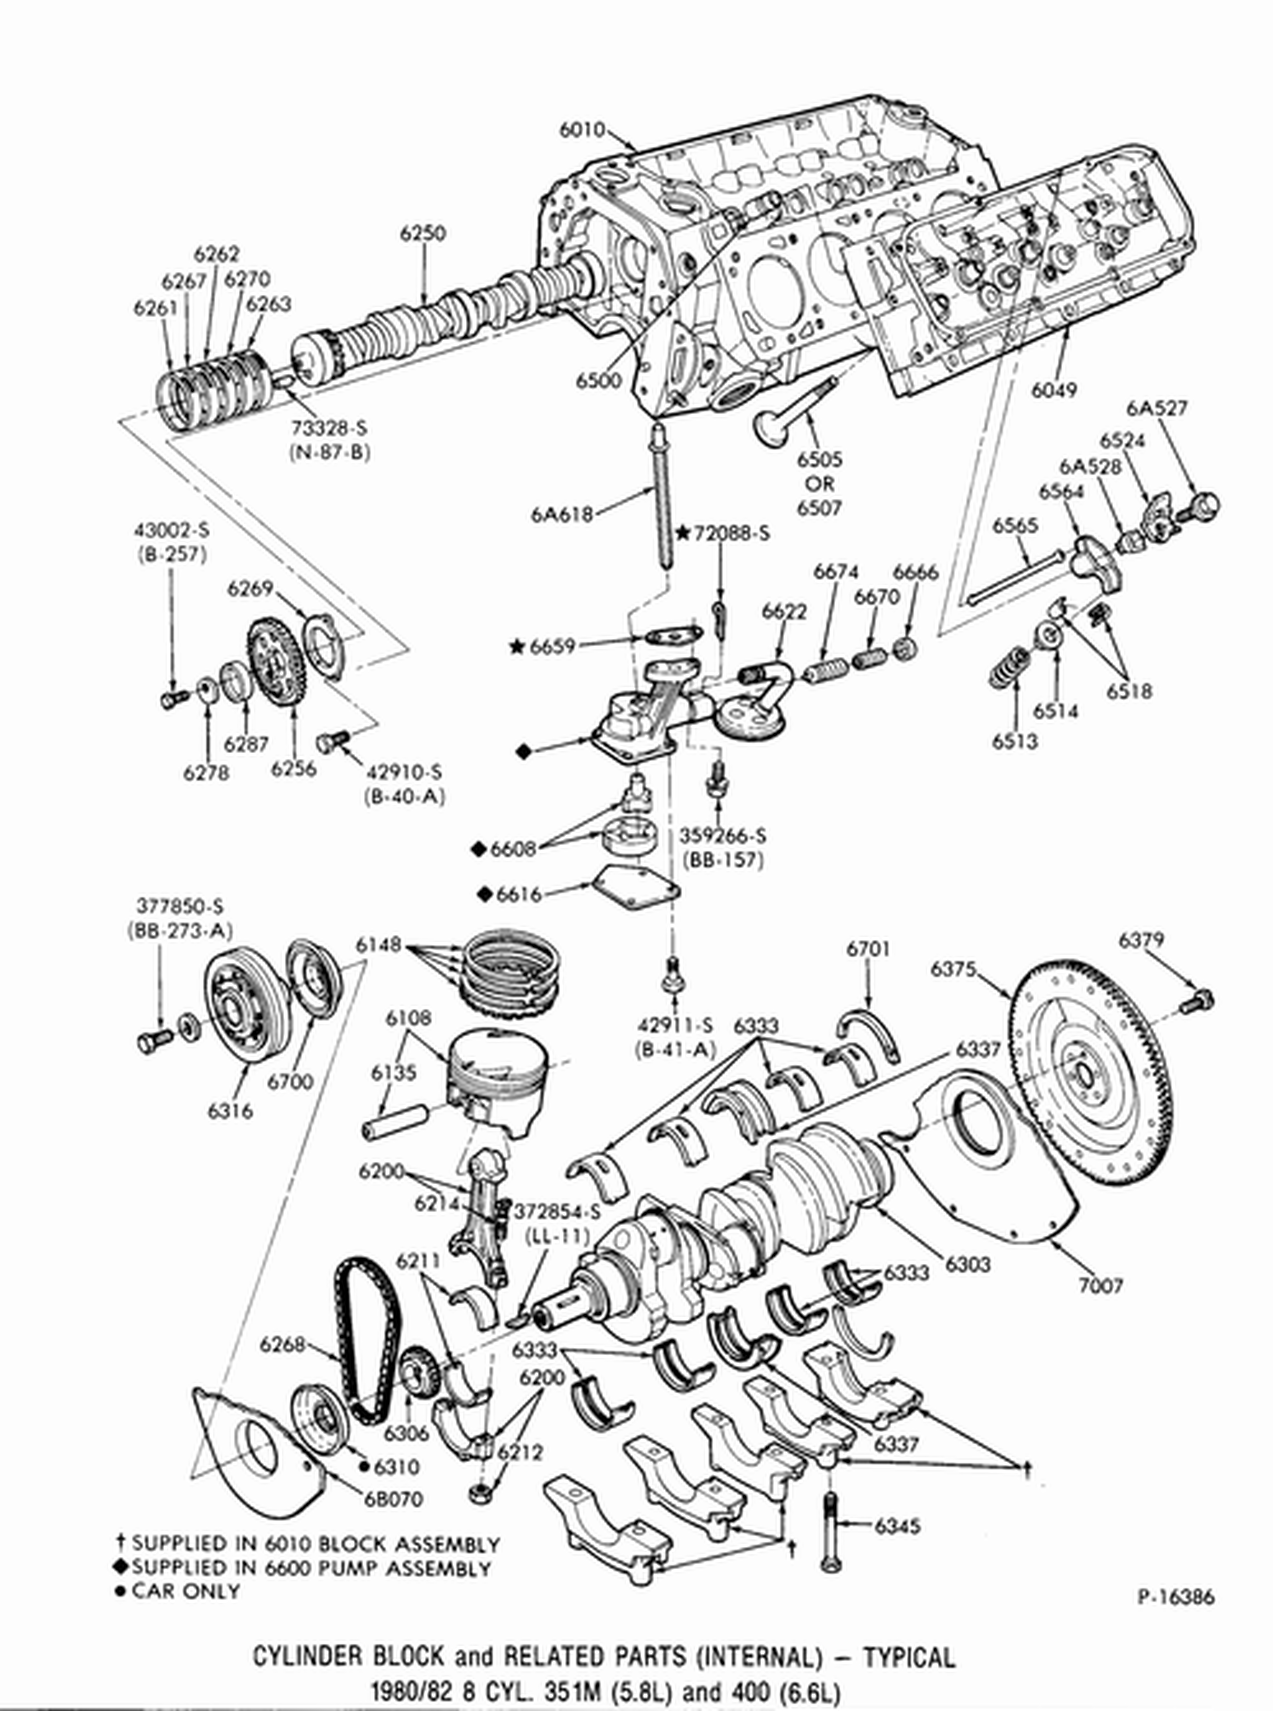 1977 ford 400 v8 engine diagram